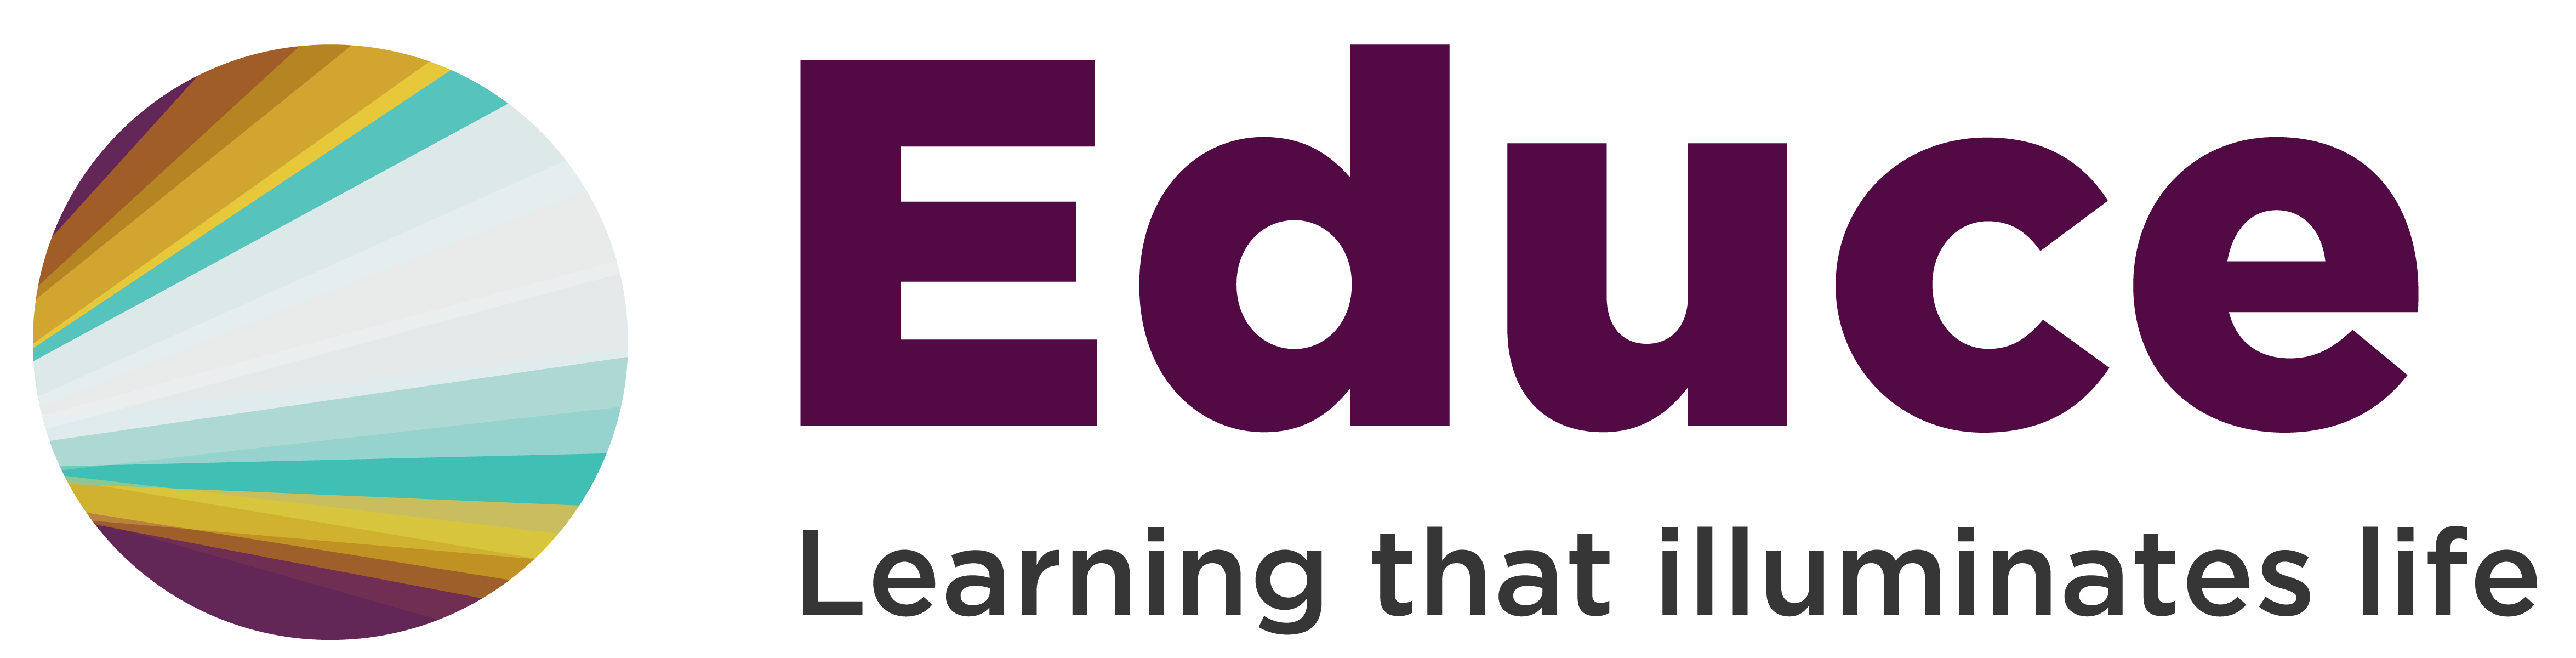 Educe - SmarterU LMS - Online Training Software